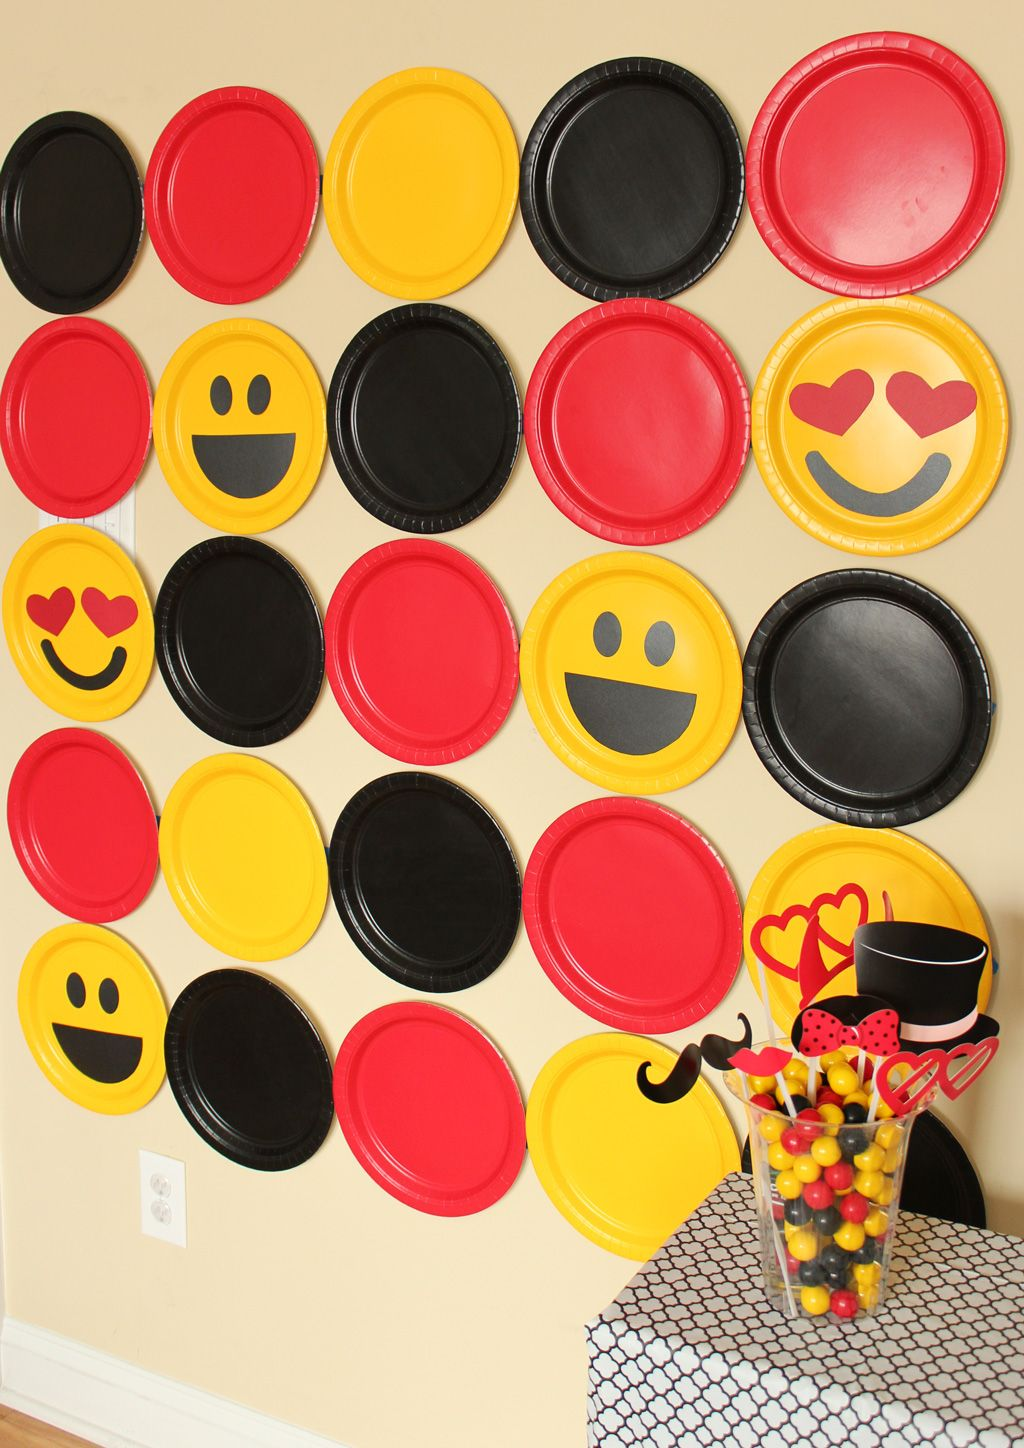 Make A Fun Space Meant For Big Smiles With DIY Photobooth Background Made Of Paper Plates Little Prep Work This Backdrop Goes Up